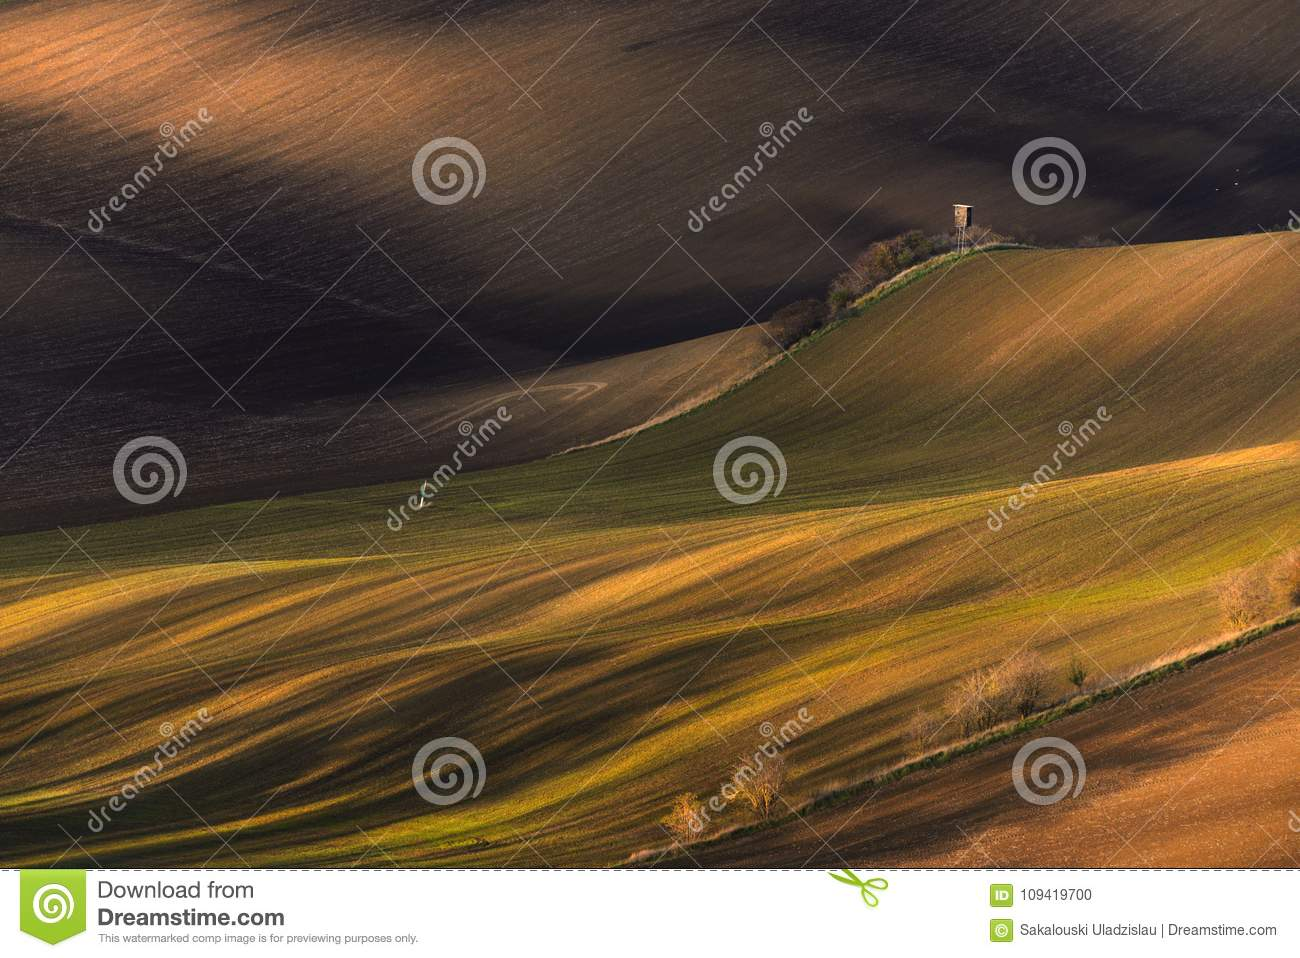 Multicolored Rural Spring /Autumn Landscape.Waved Cultivated Row Field With Hunting Tower In Springtime. Rustic Autumn Landscape